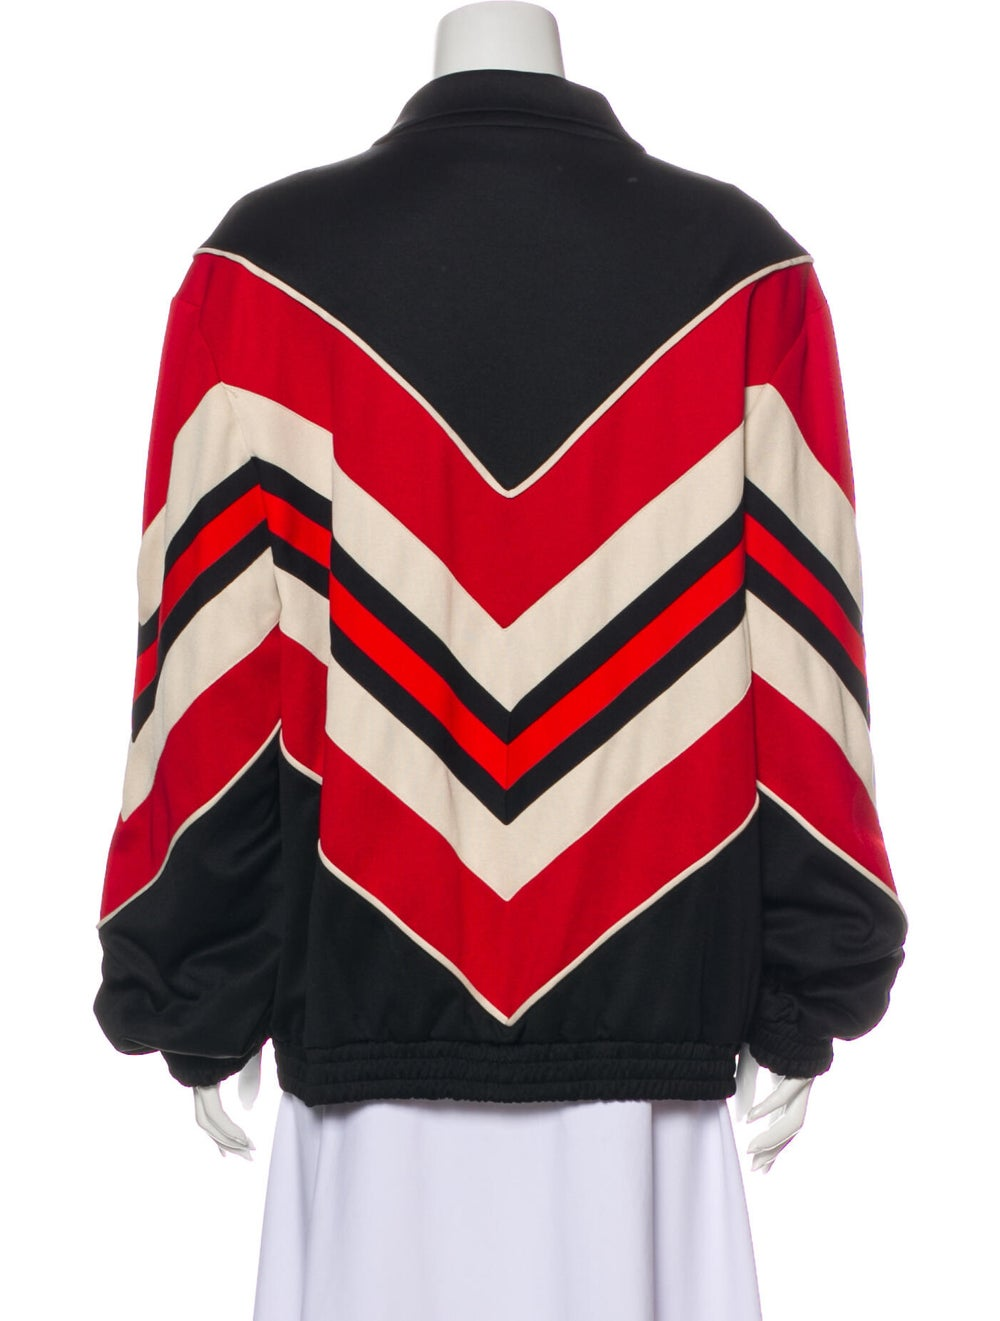 Gucci 2019 Striped Bomber Jacket w/ Tags Black - image 3